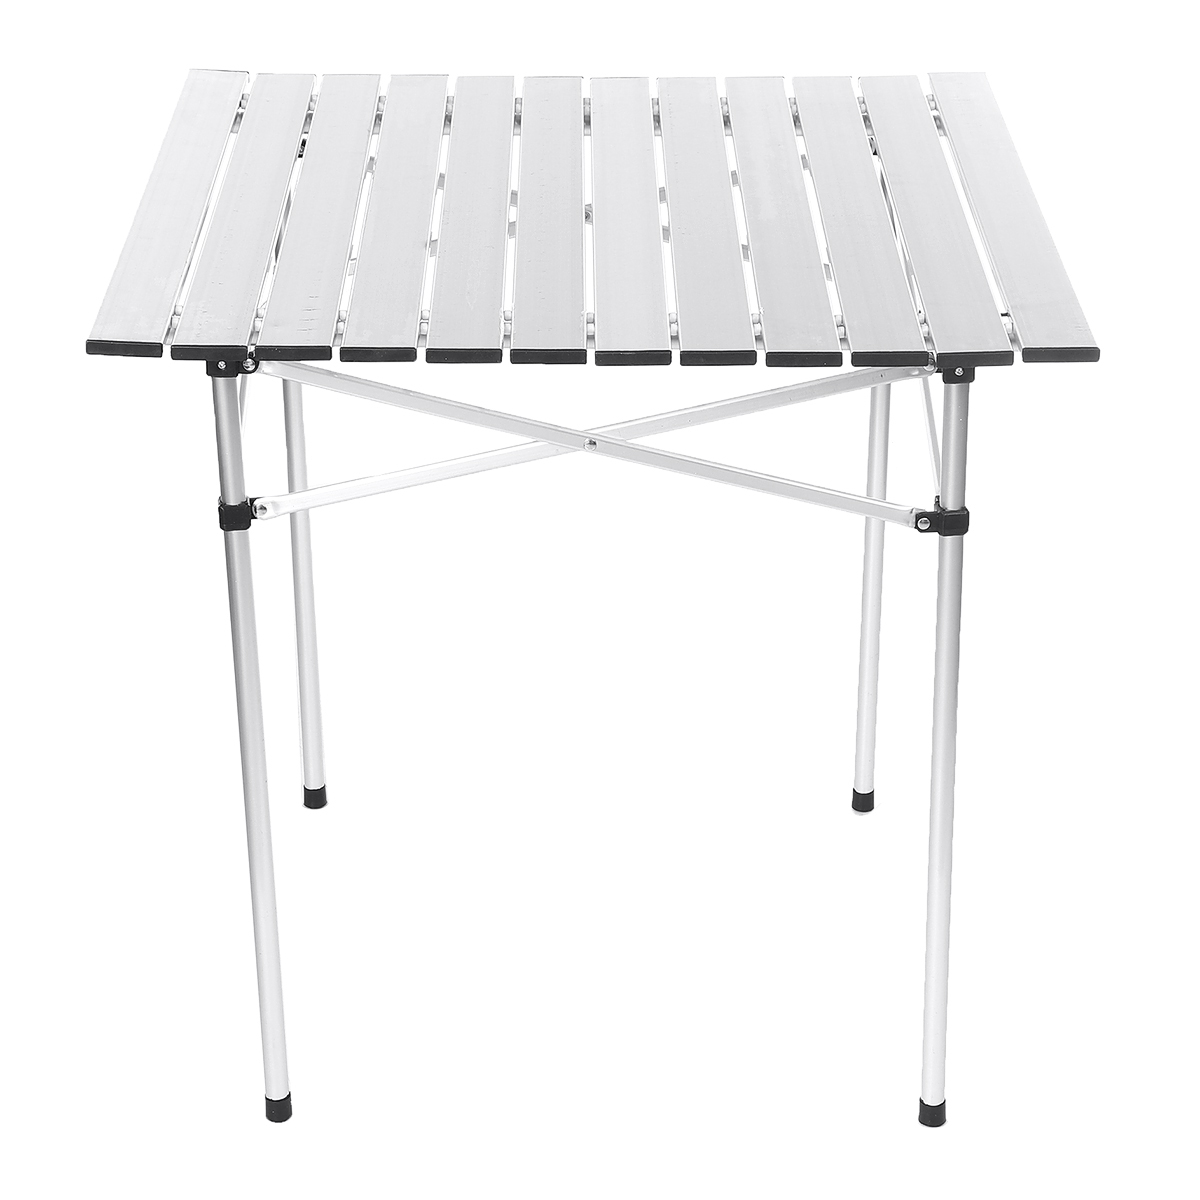 SWEI Portable Folding Table Aluminum Indoor Outdoor BBQ Picnic Party Camping Desk